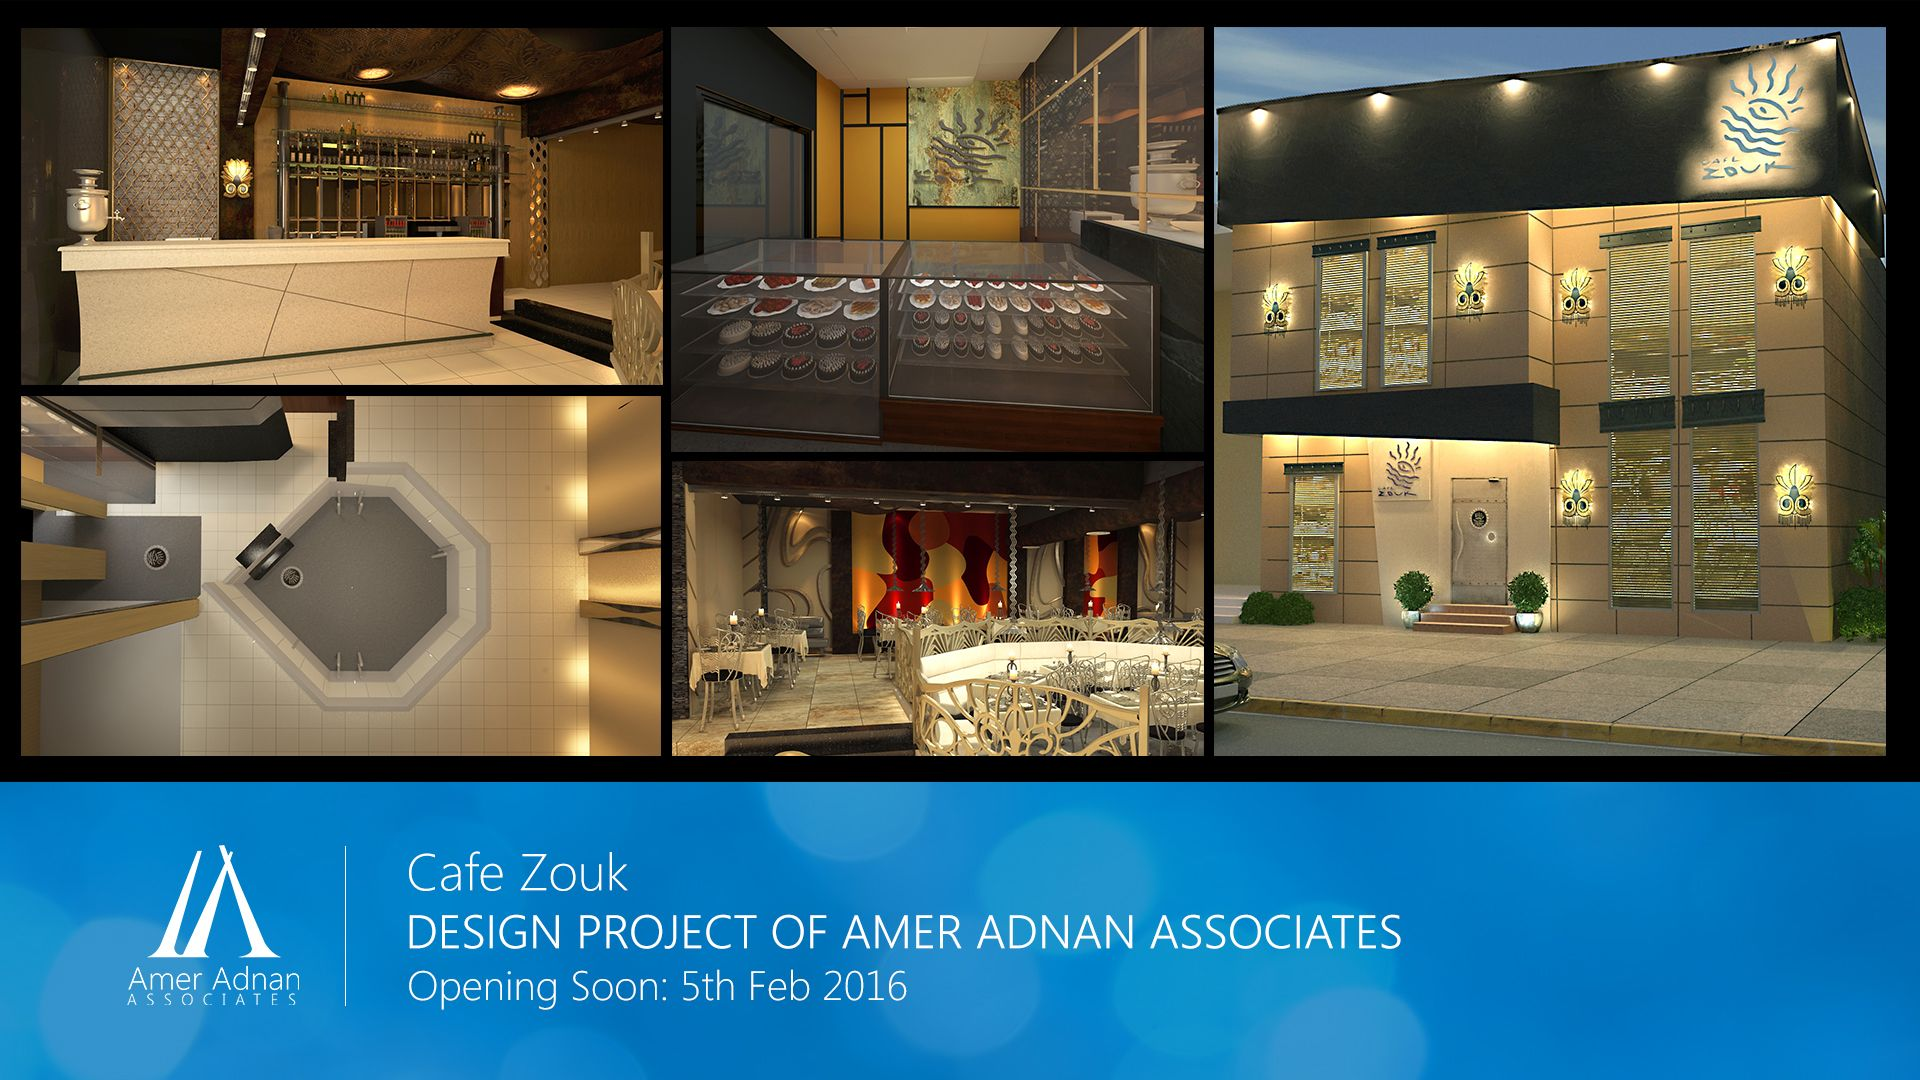 Cafe Zouk In Sialkot